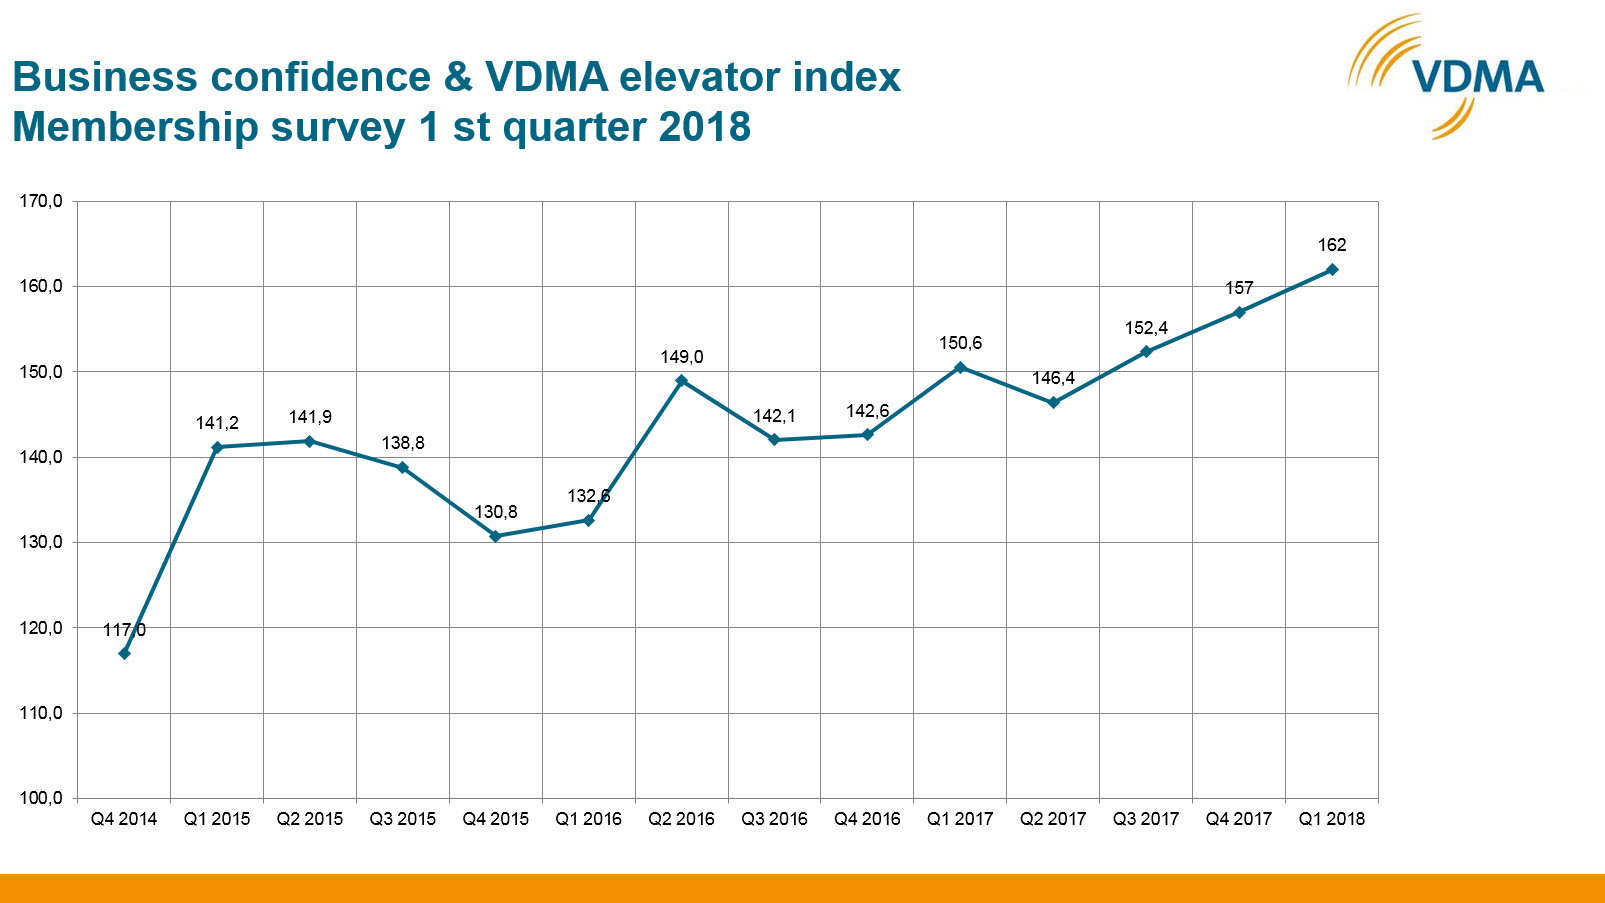 VDMA elevator index reveals top business confidence: VDMA member companies show a newly risen confidence in the 1st quarter of 2018 which reaches a new record high. Source: VDMA Association Elevators and Escalators April 2018